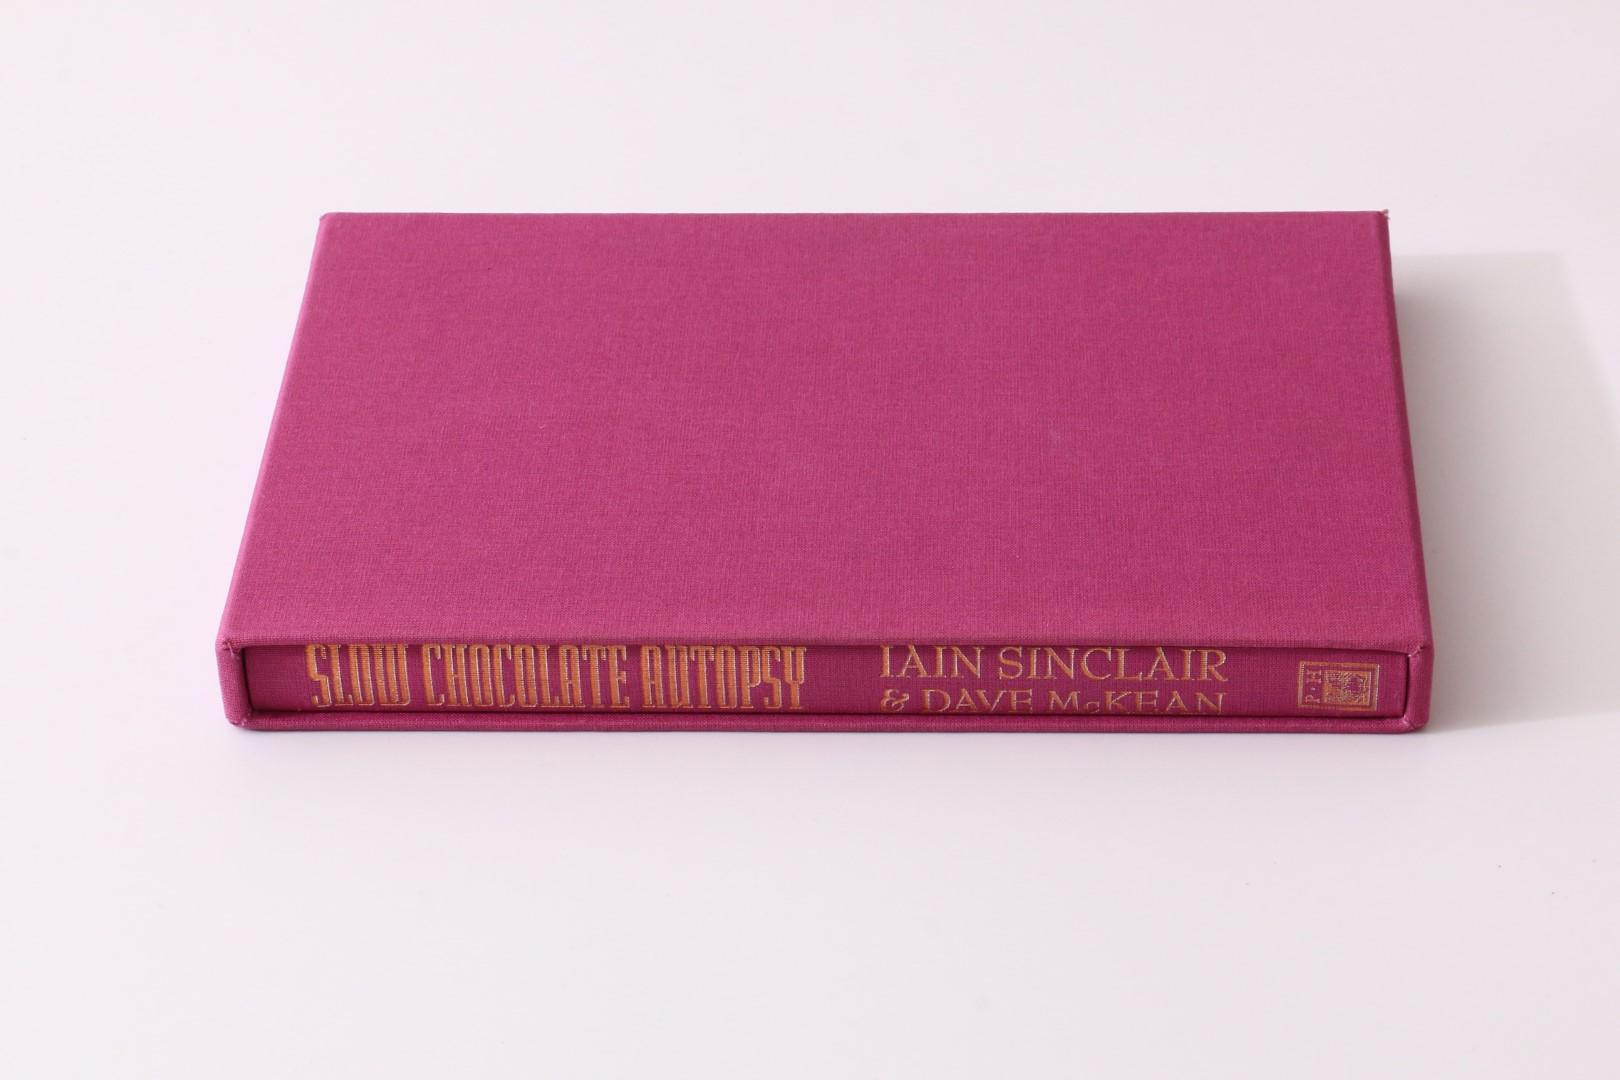 Iain Sinclair - Slow Chocolate Autopsy - Phoenix House, 1997, Signed Limited Edition.